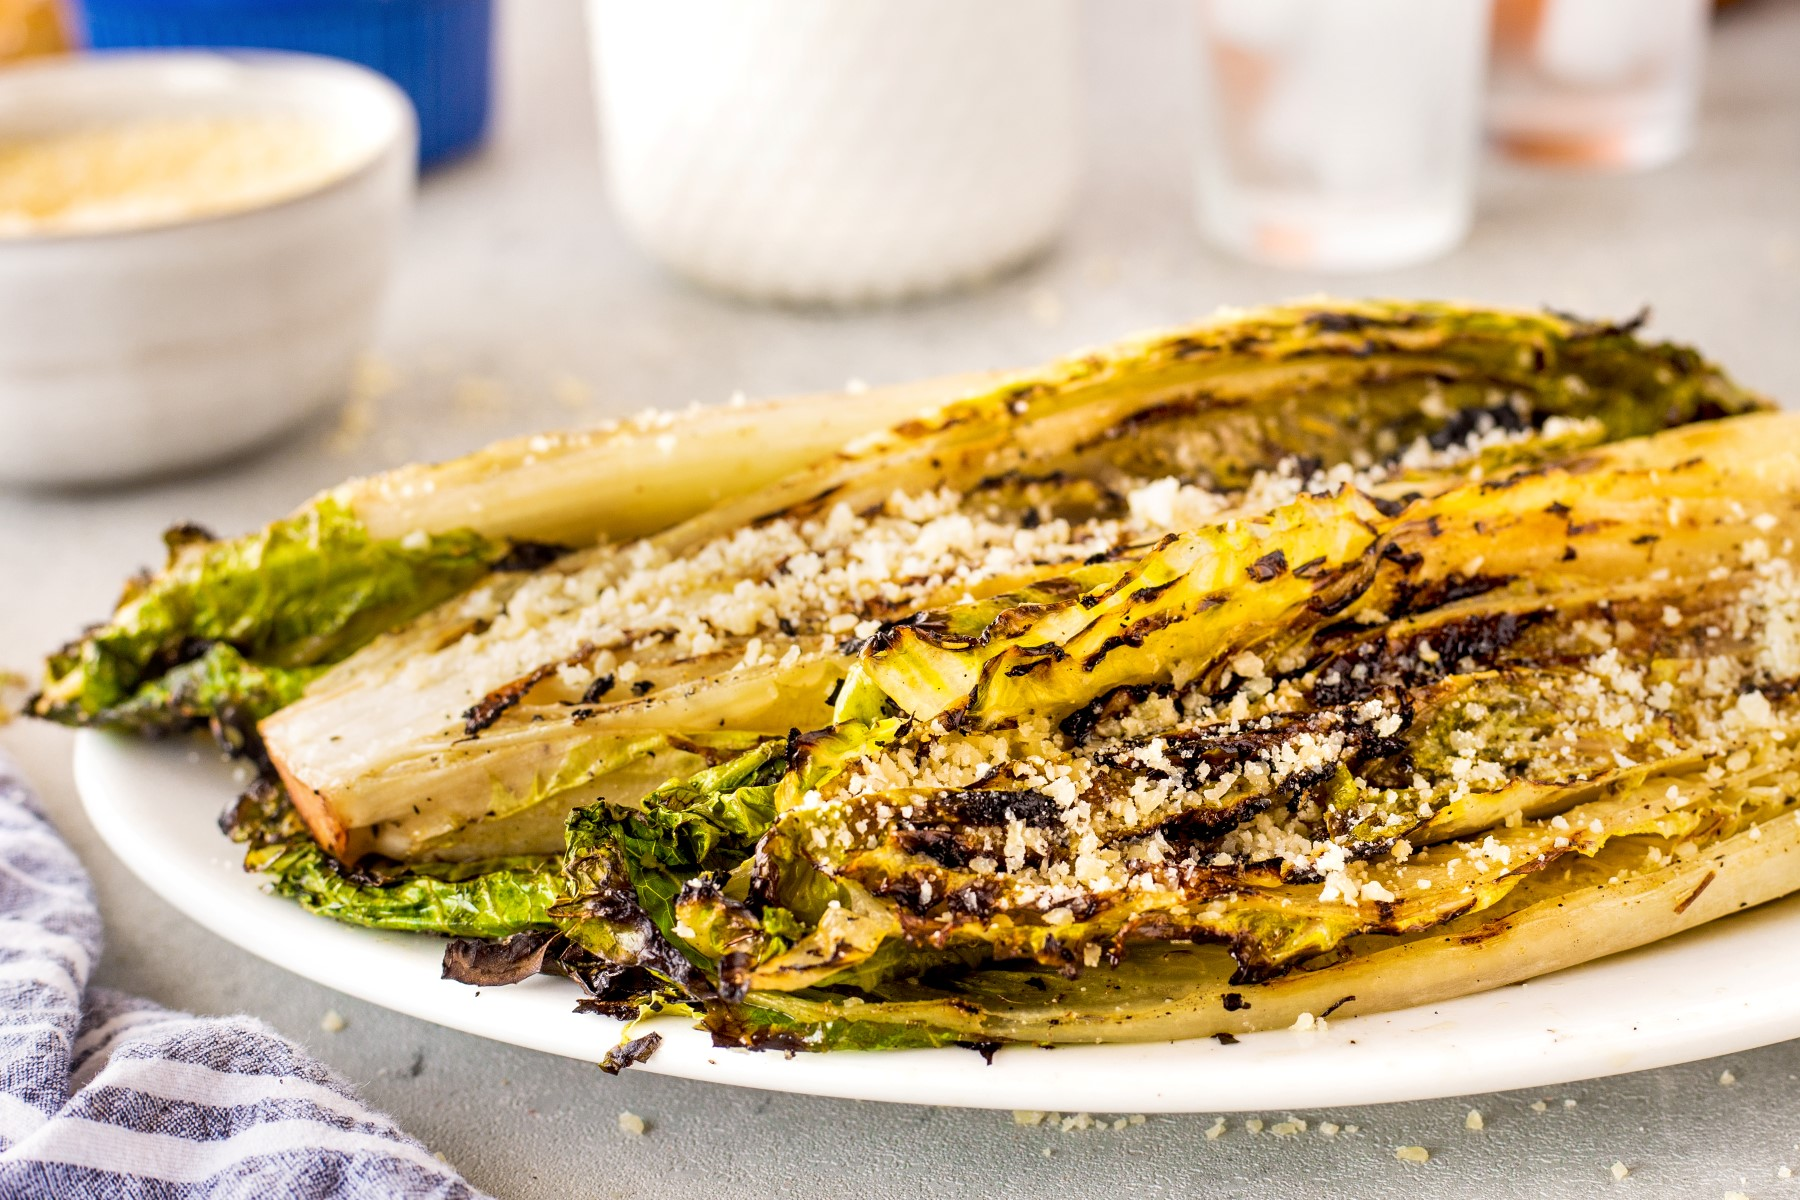 Grilled Romaine Hearts on a white platter with grated cheese sprinkled on top.